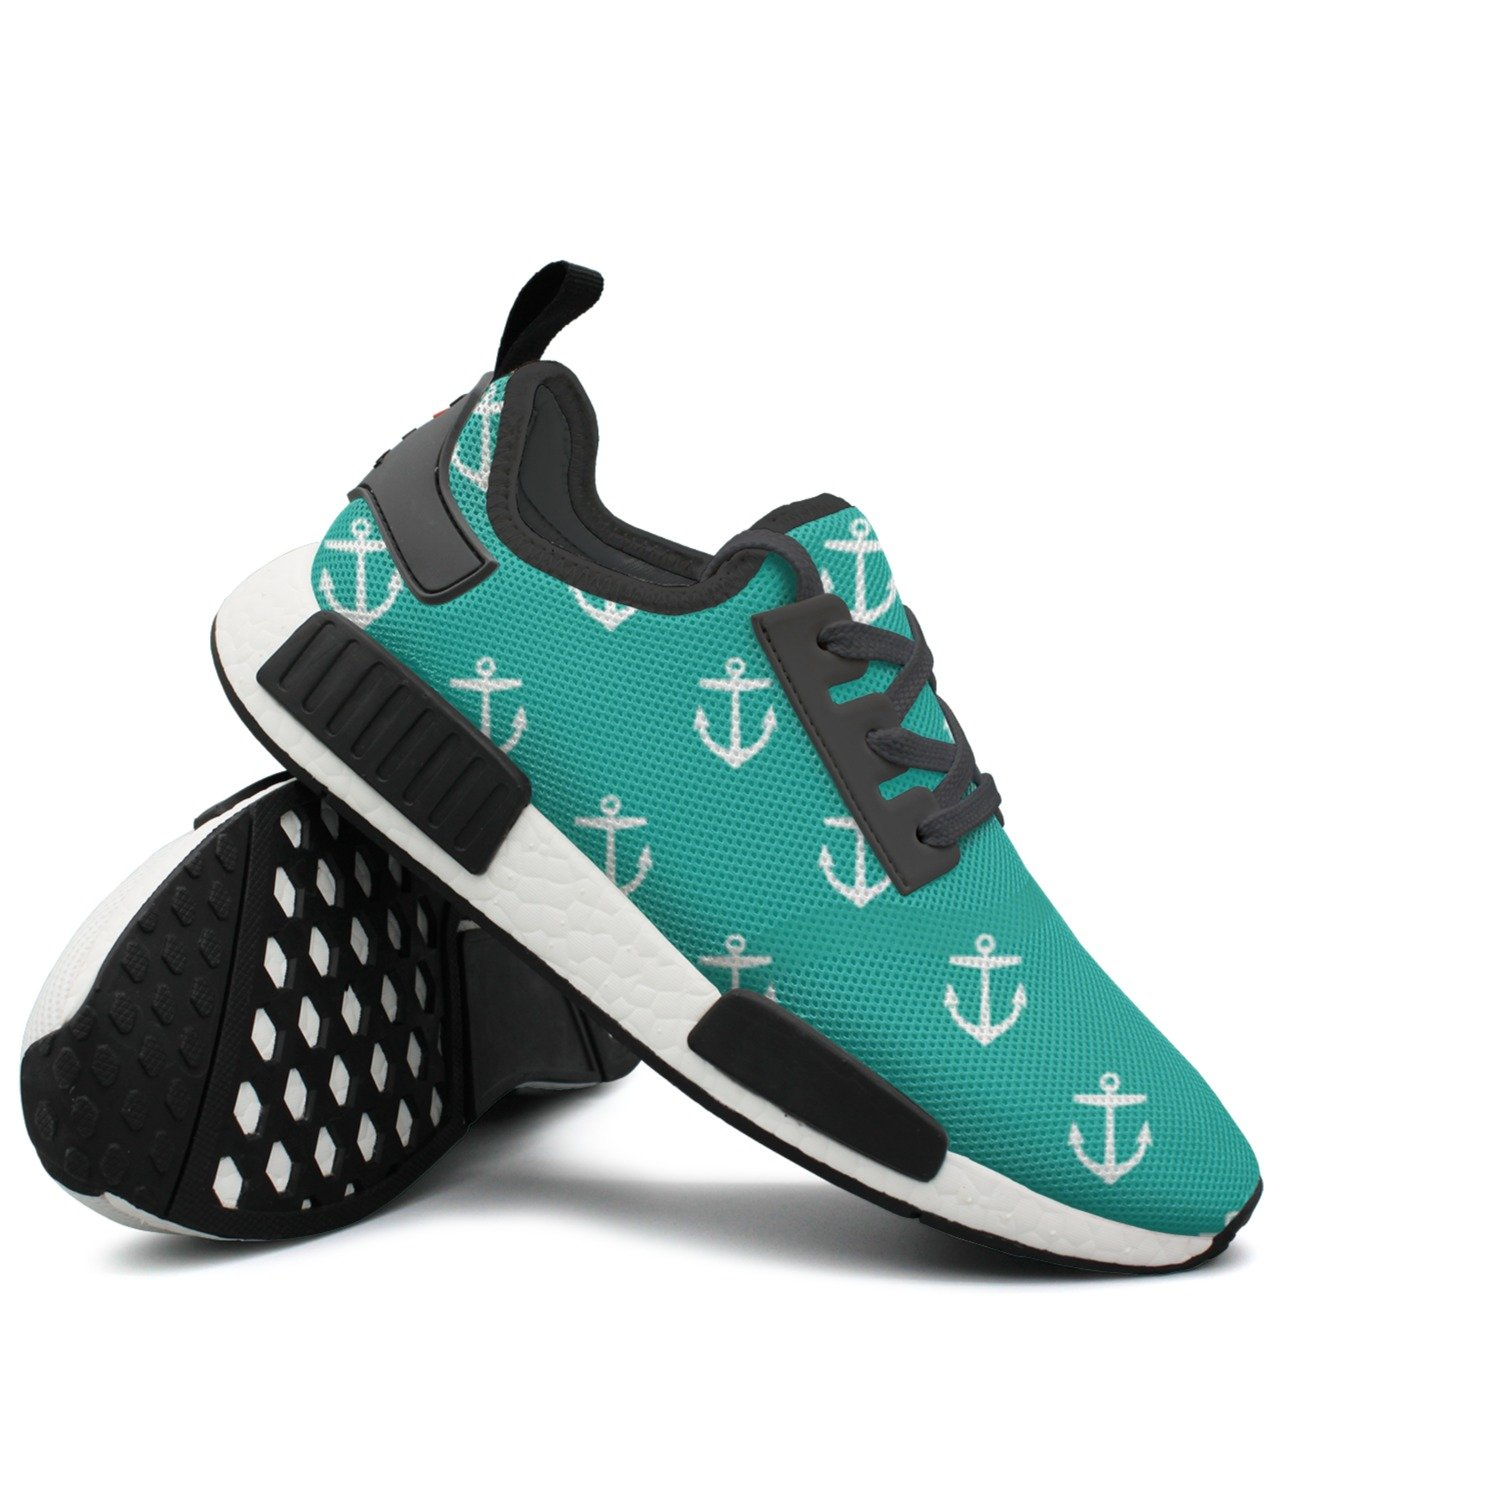 CVOIREWKLL Anchors Repeated Wear-resistant Classic Stylish Print Hiking Shoes